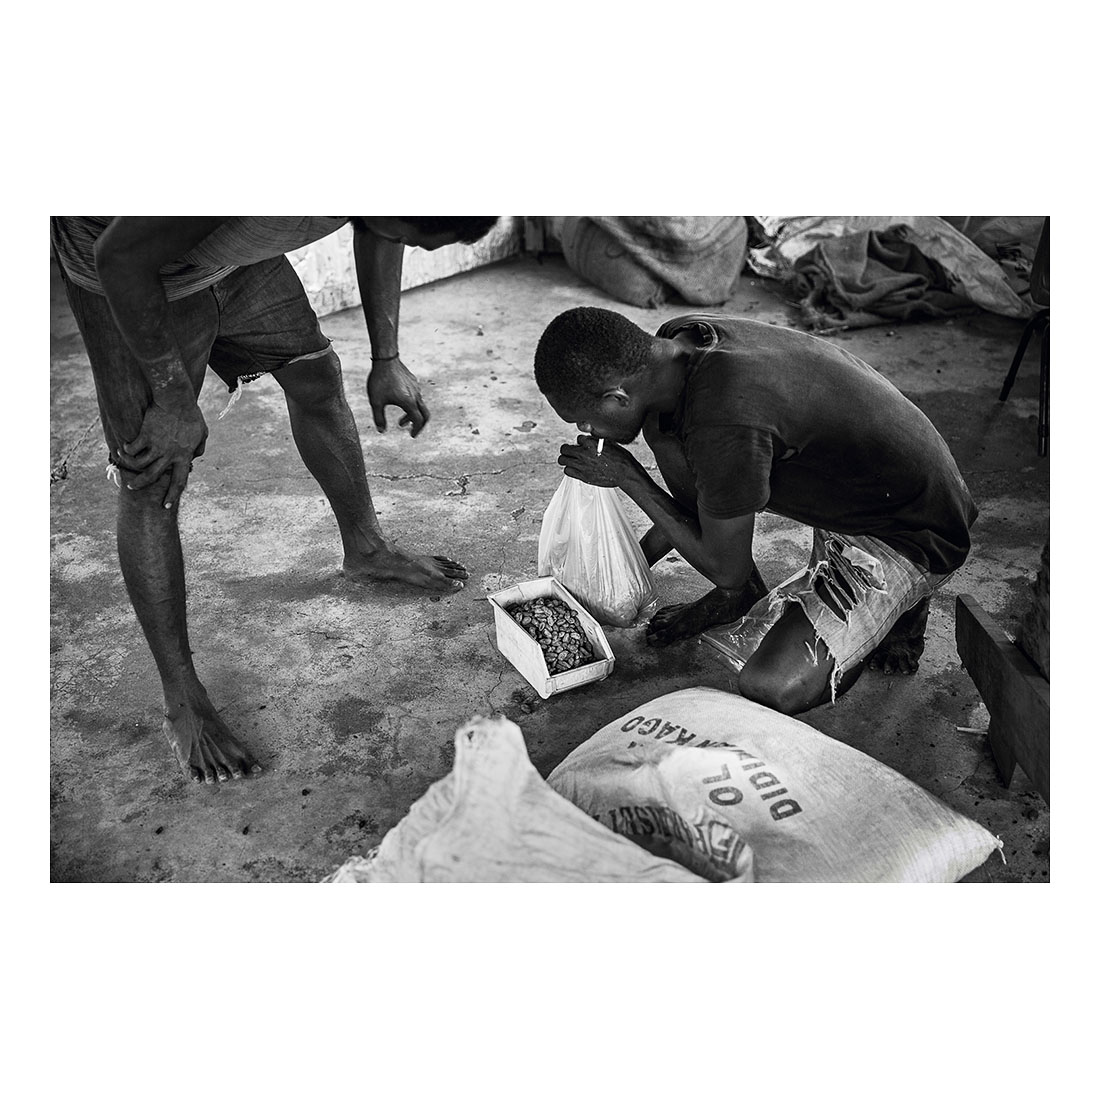 #42 Honiara, Guadalcanal, Solomon Islands  (2016).  Archival pigment print on Ilford paper. Exhibition print 24cm x 36cm. Different sizes available.